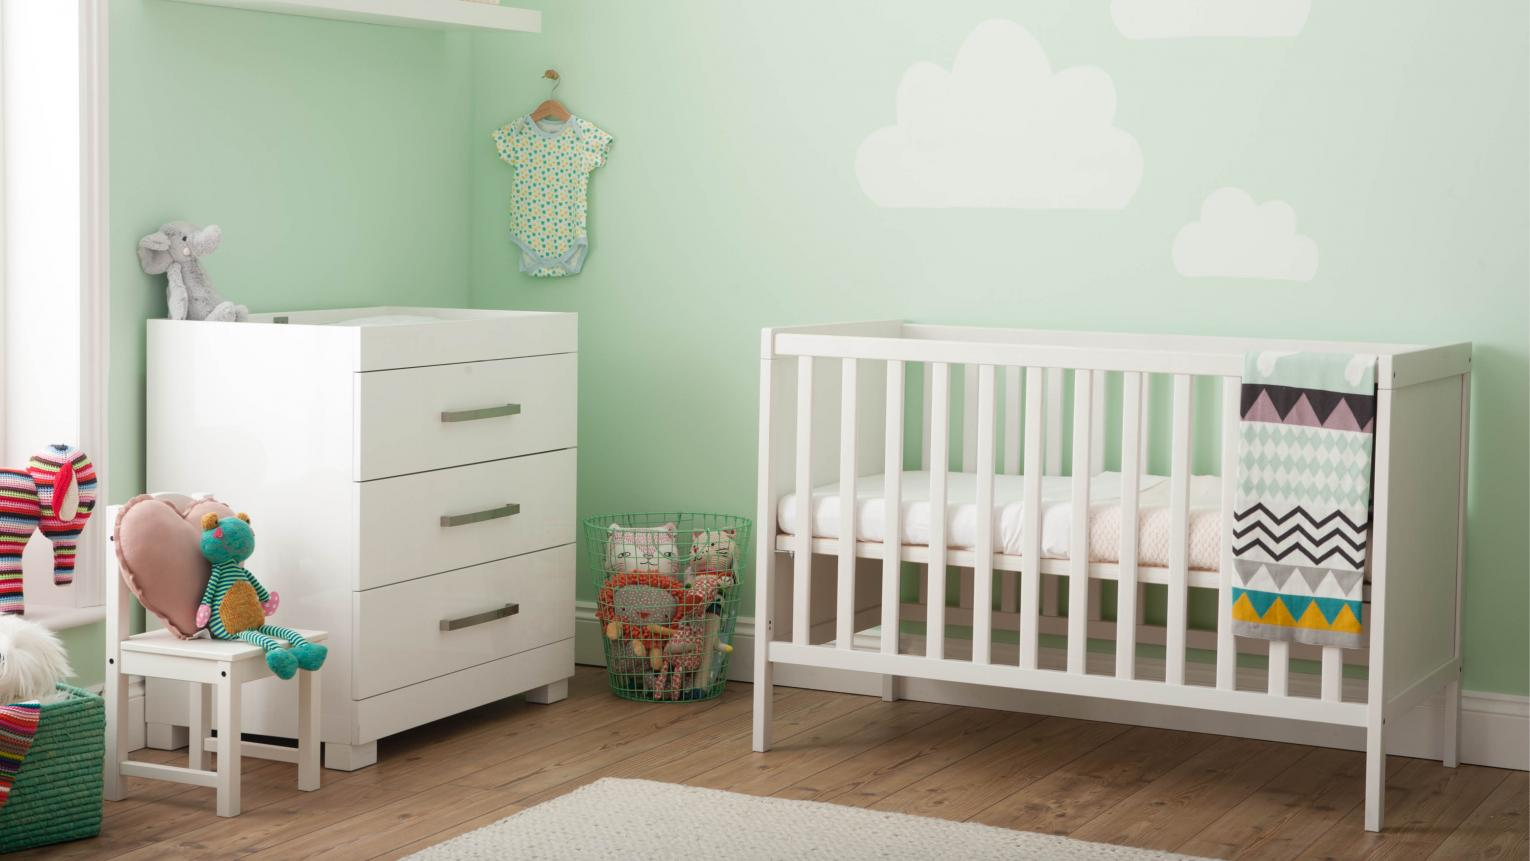 Baby nursery color schemes for your baby room